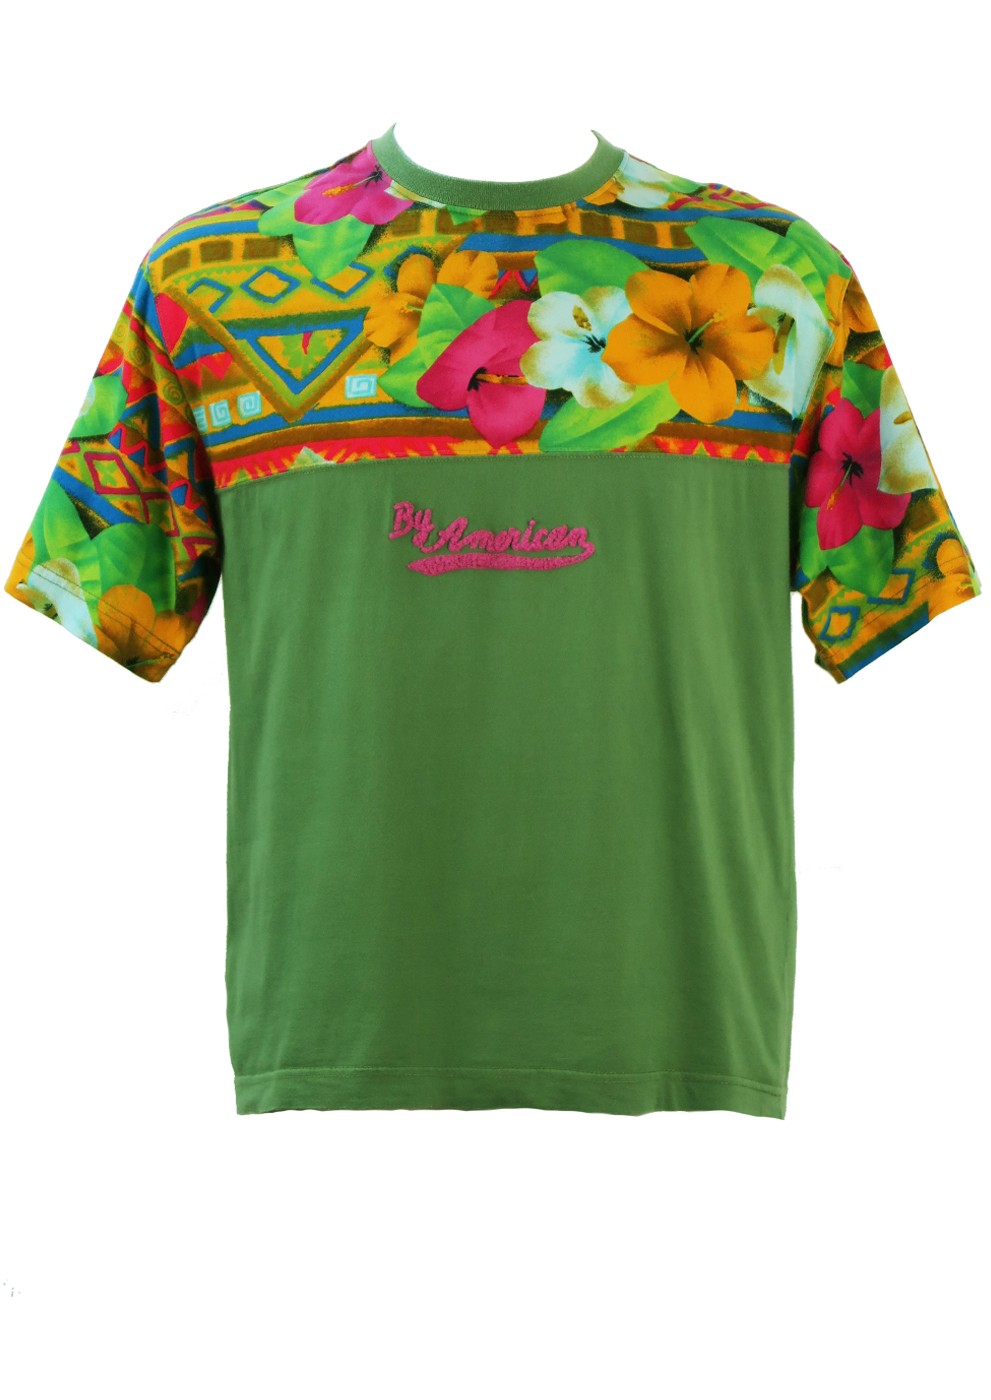 Olive Green T Shirt With Hawaiian Floral Print In Pink